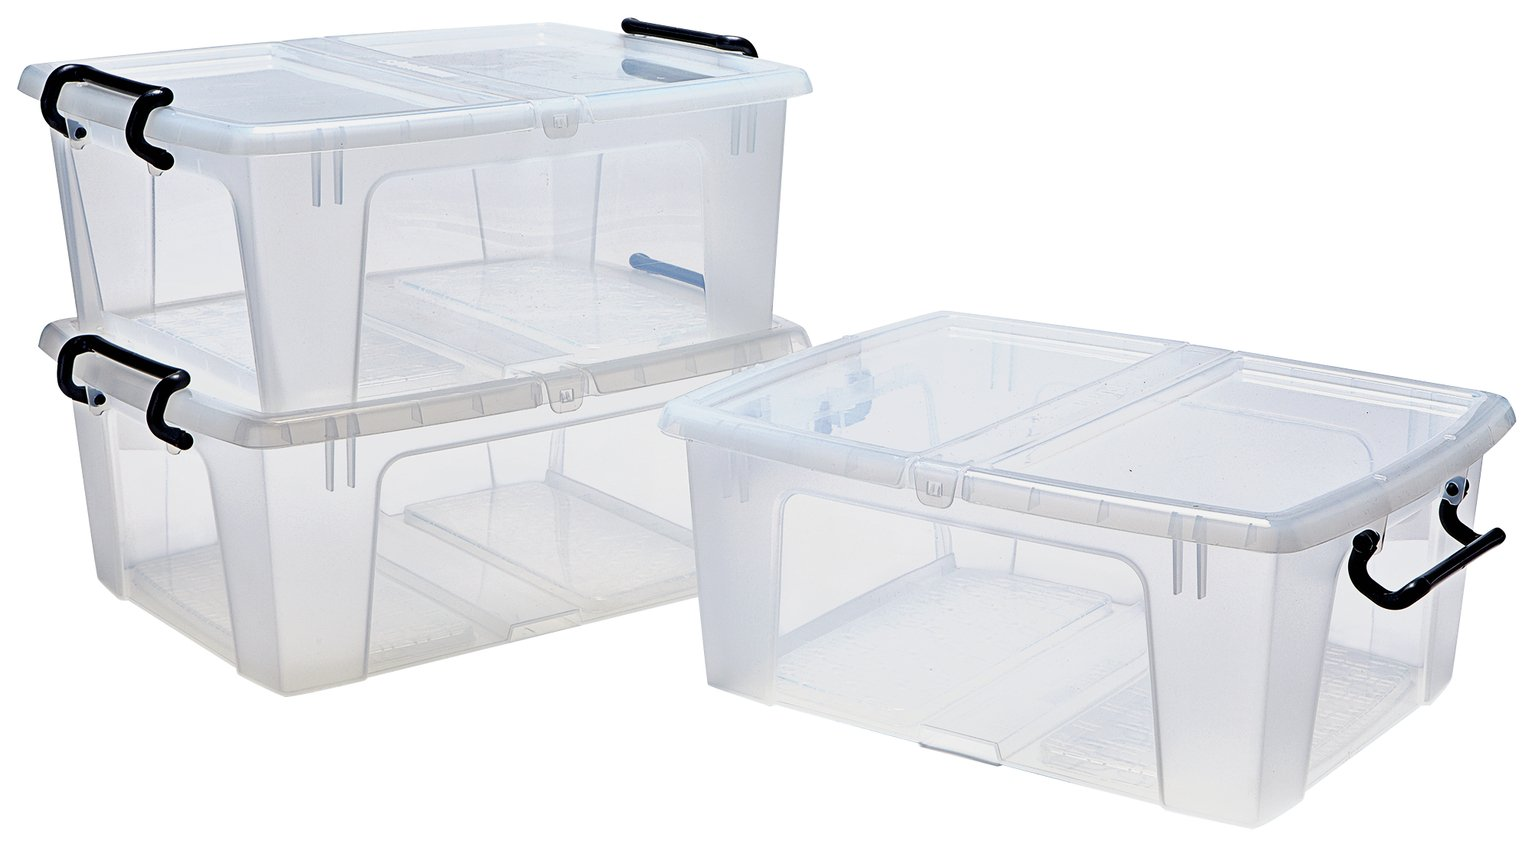 HOME 20 Litre Front Opening Plastic Storage Boxes - Set of 3